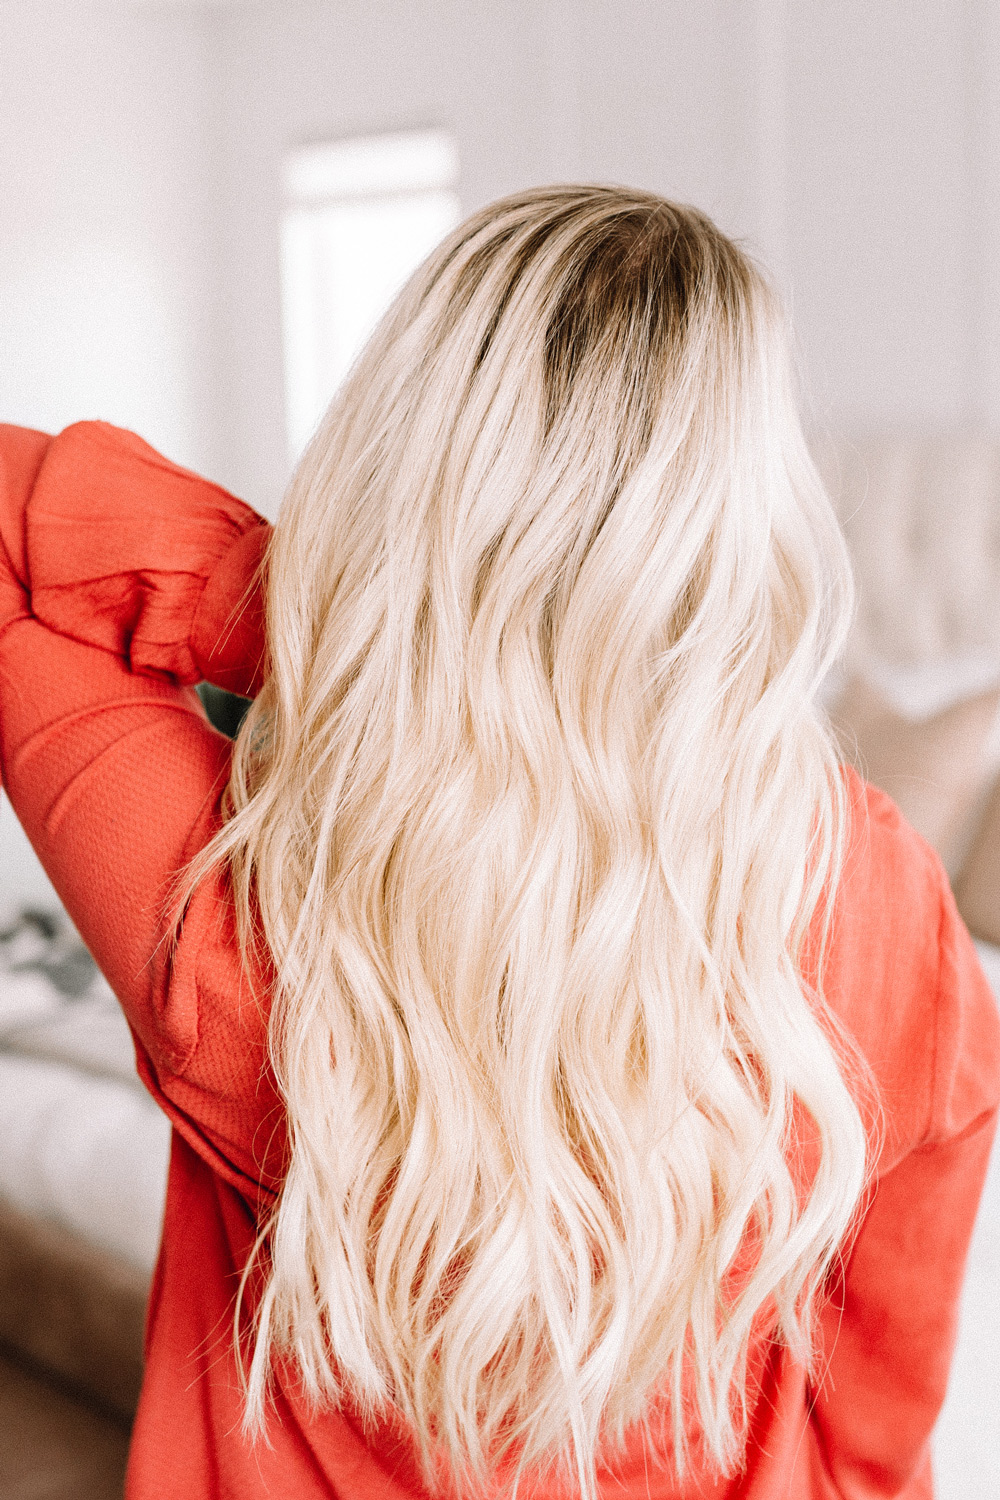 how to curl long hair with a curling wand by Abby from twistmepretty.com